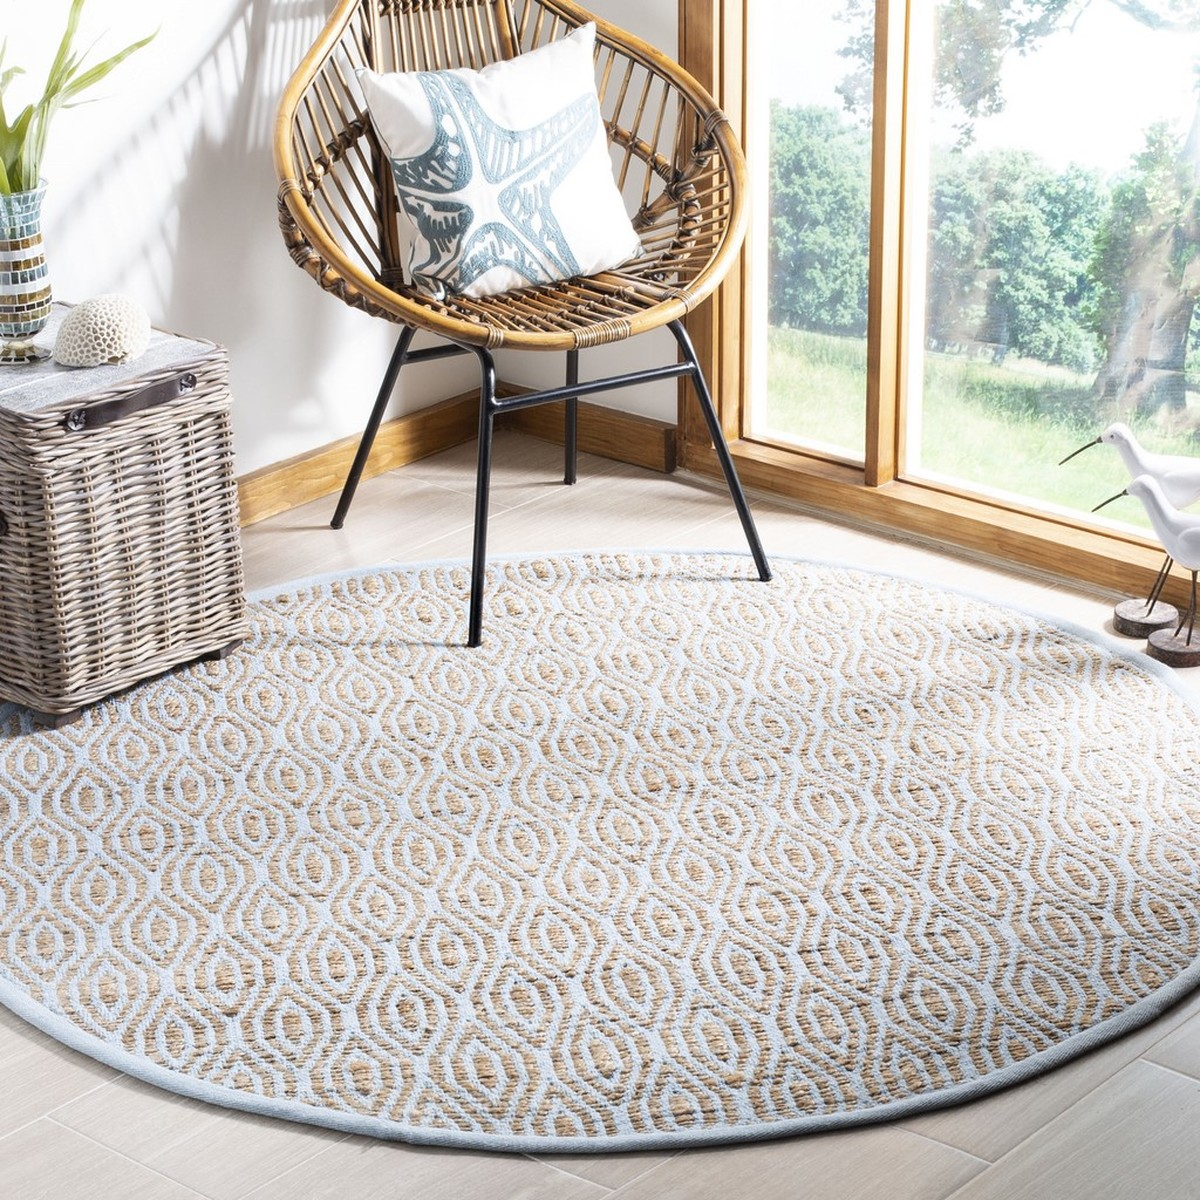 Rug Cap822j Cape Cod Area Rugs By Safavieh